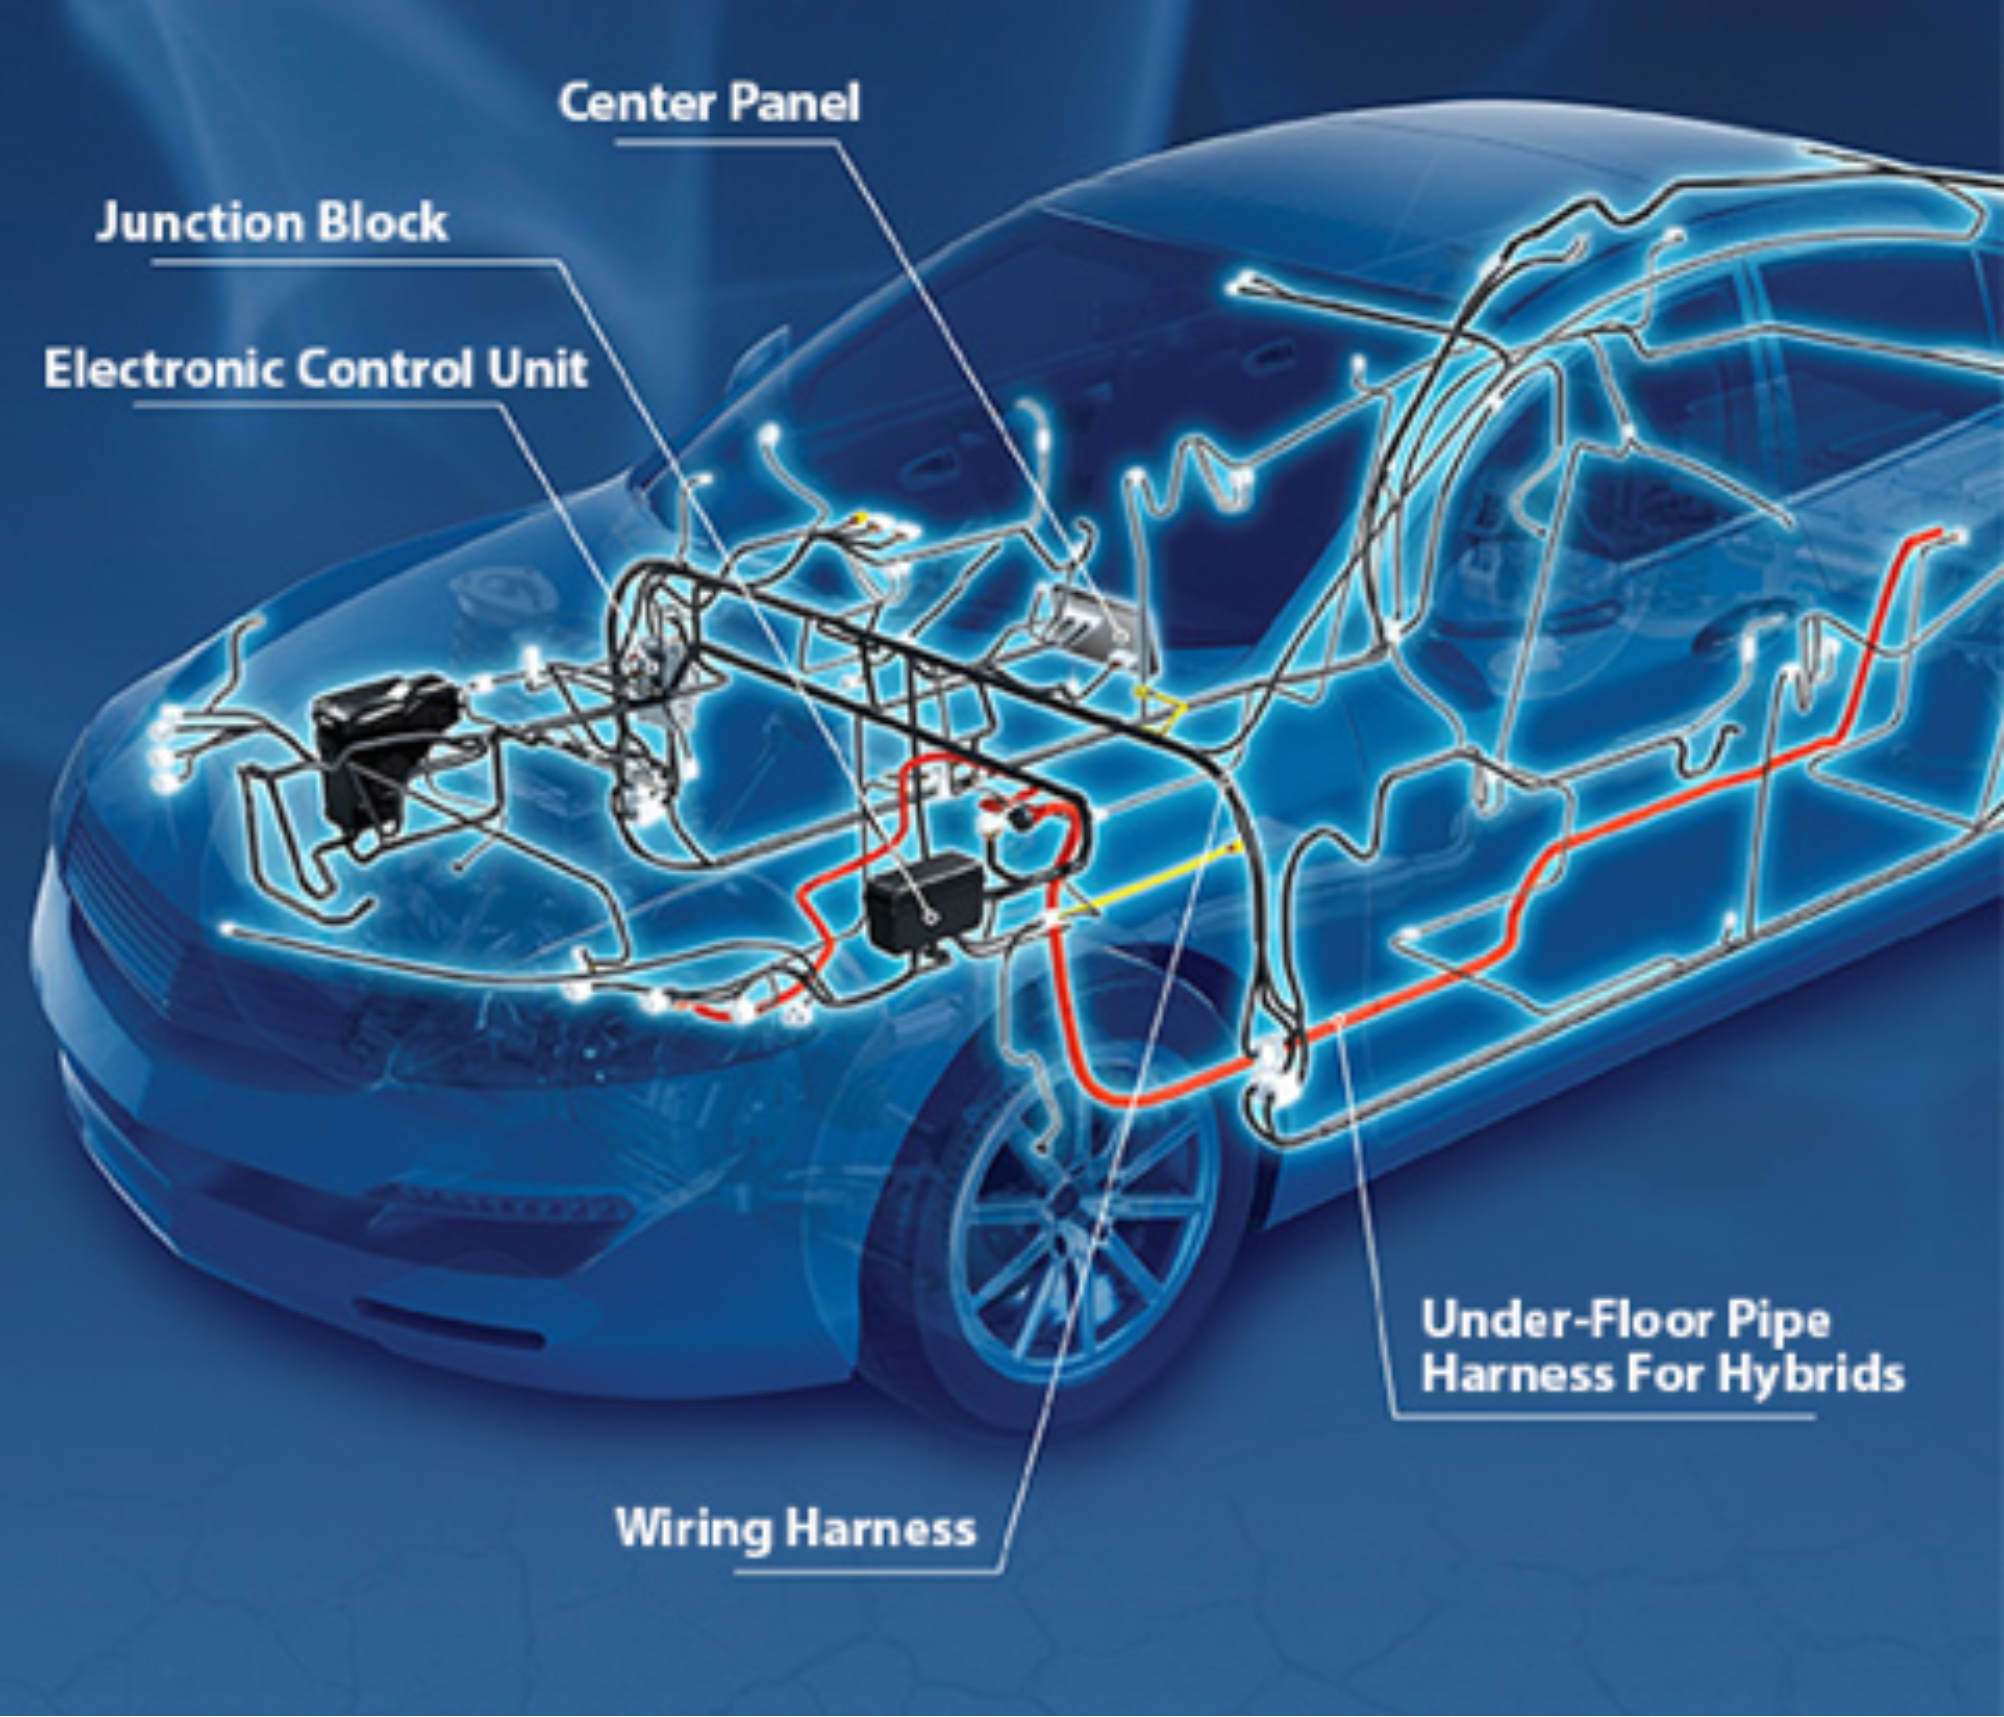 image core business wiring harnesses sews cabind Classic Car Wiring Harness at virtualis.co